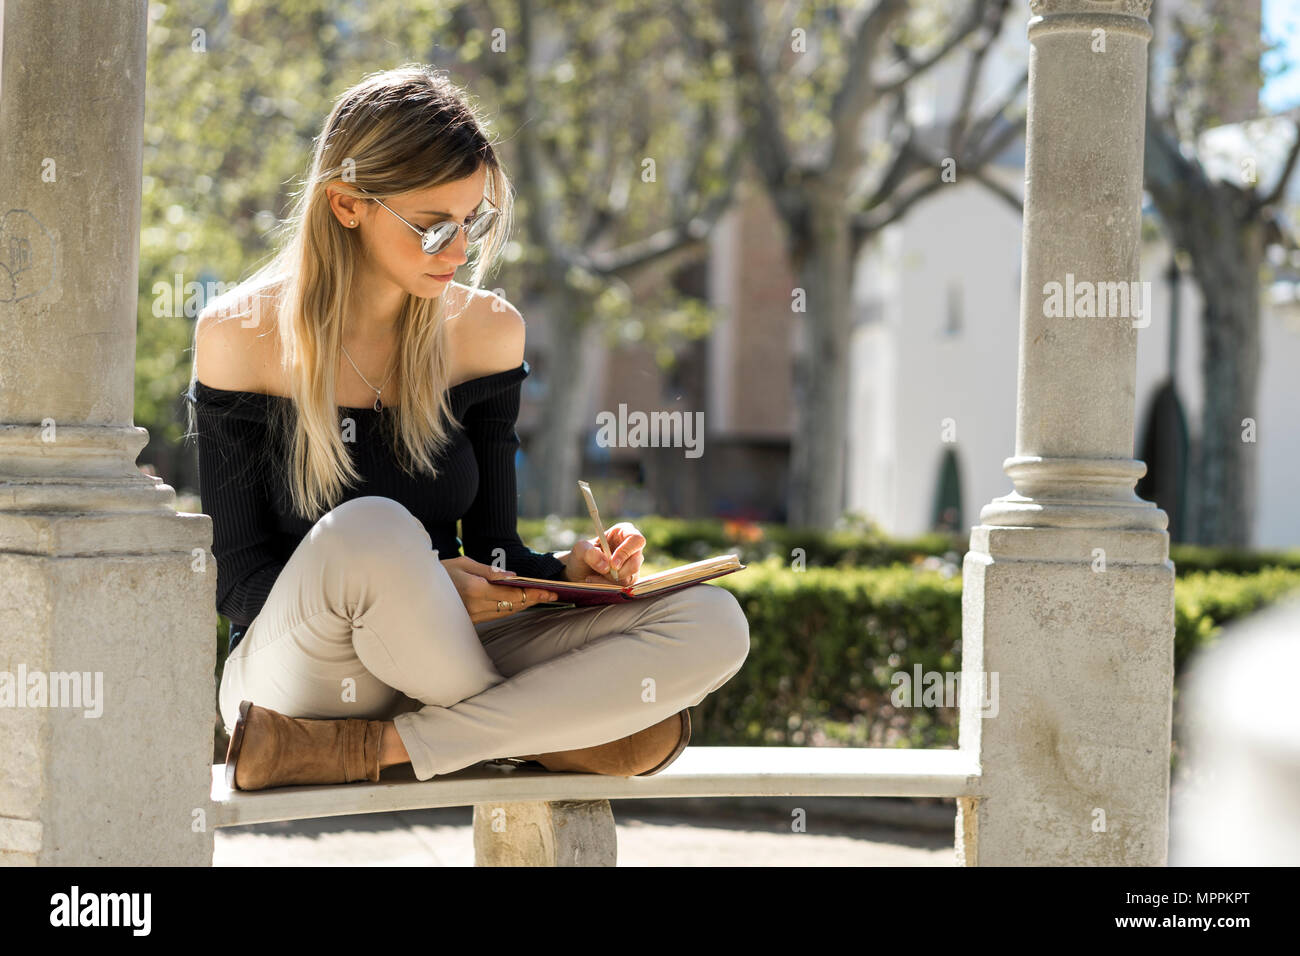 Young woman with notebook sitting on bench writing down something - Stock Image